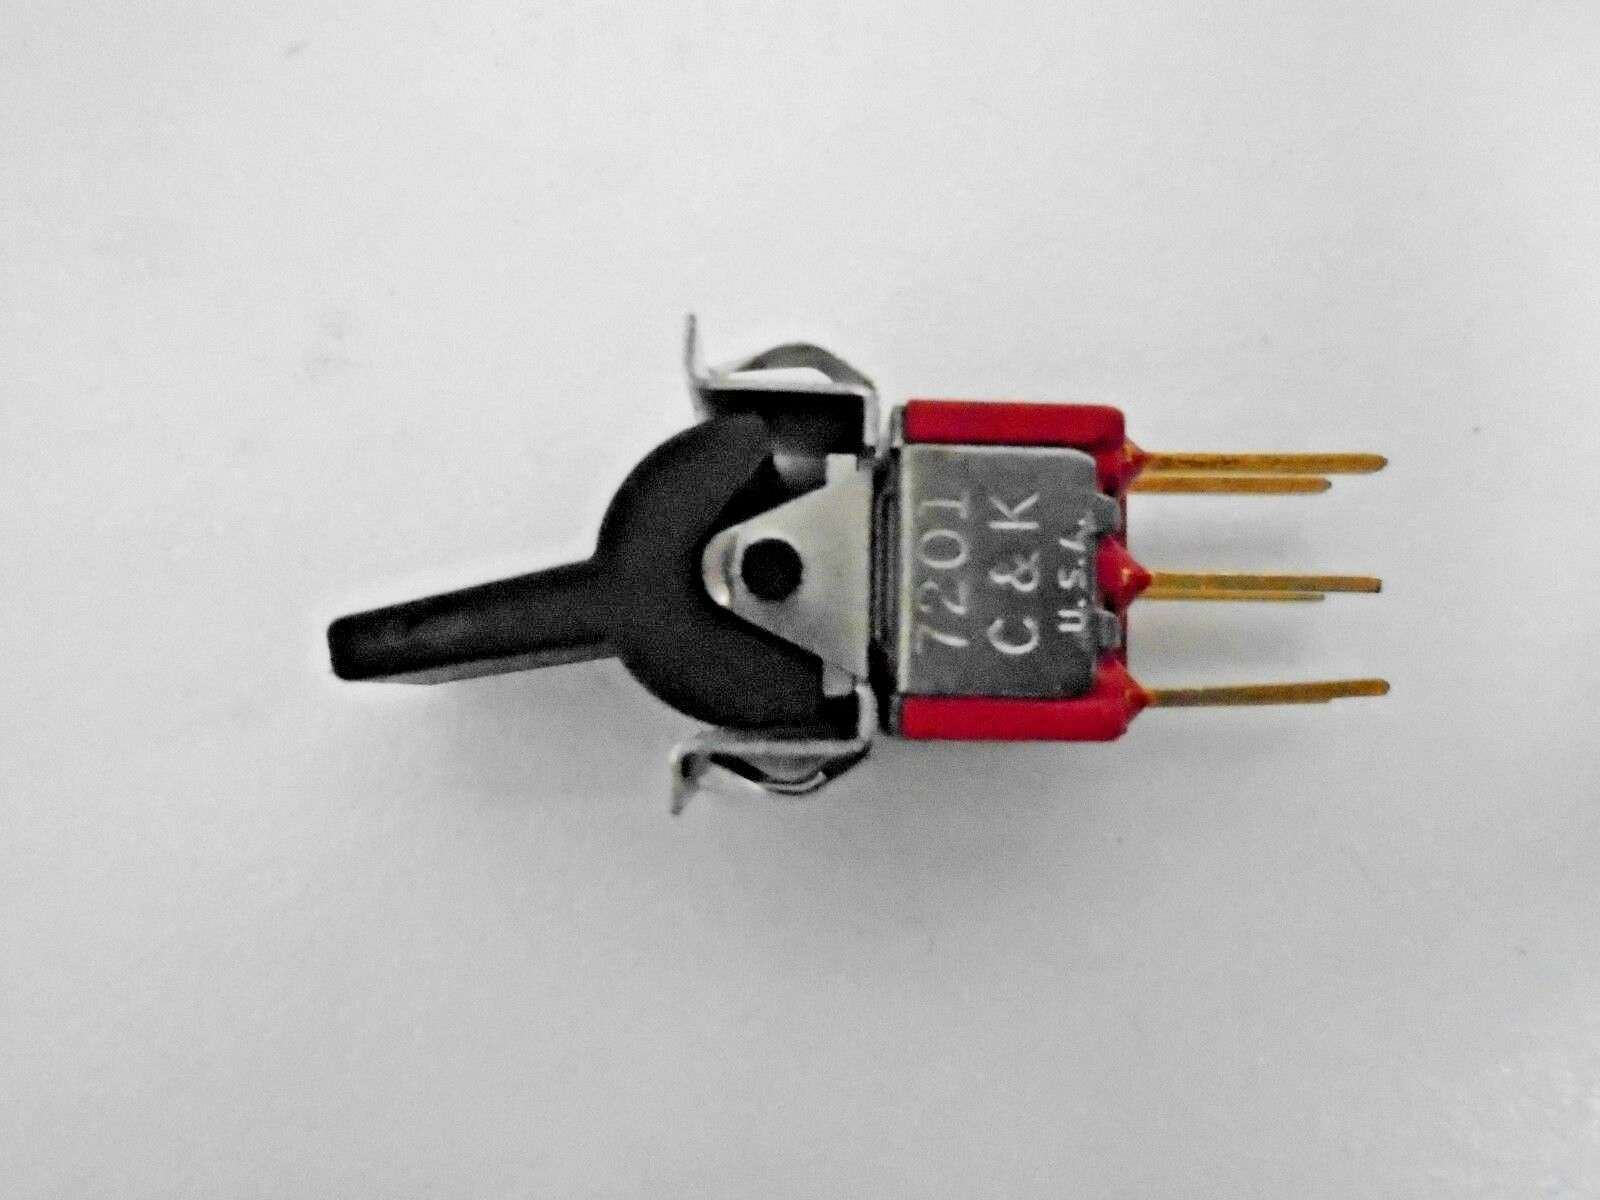 8x On Dpdt Mini Toggle Switch Ck 7201 Ebay Switches Specialty Circuit